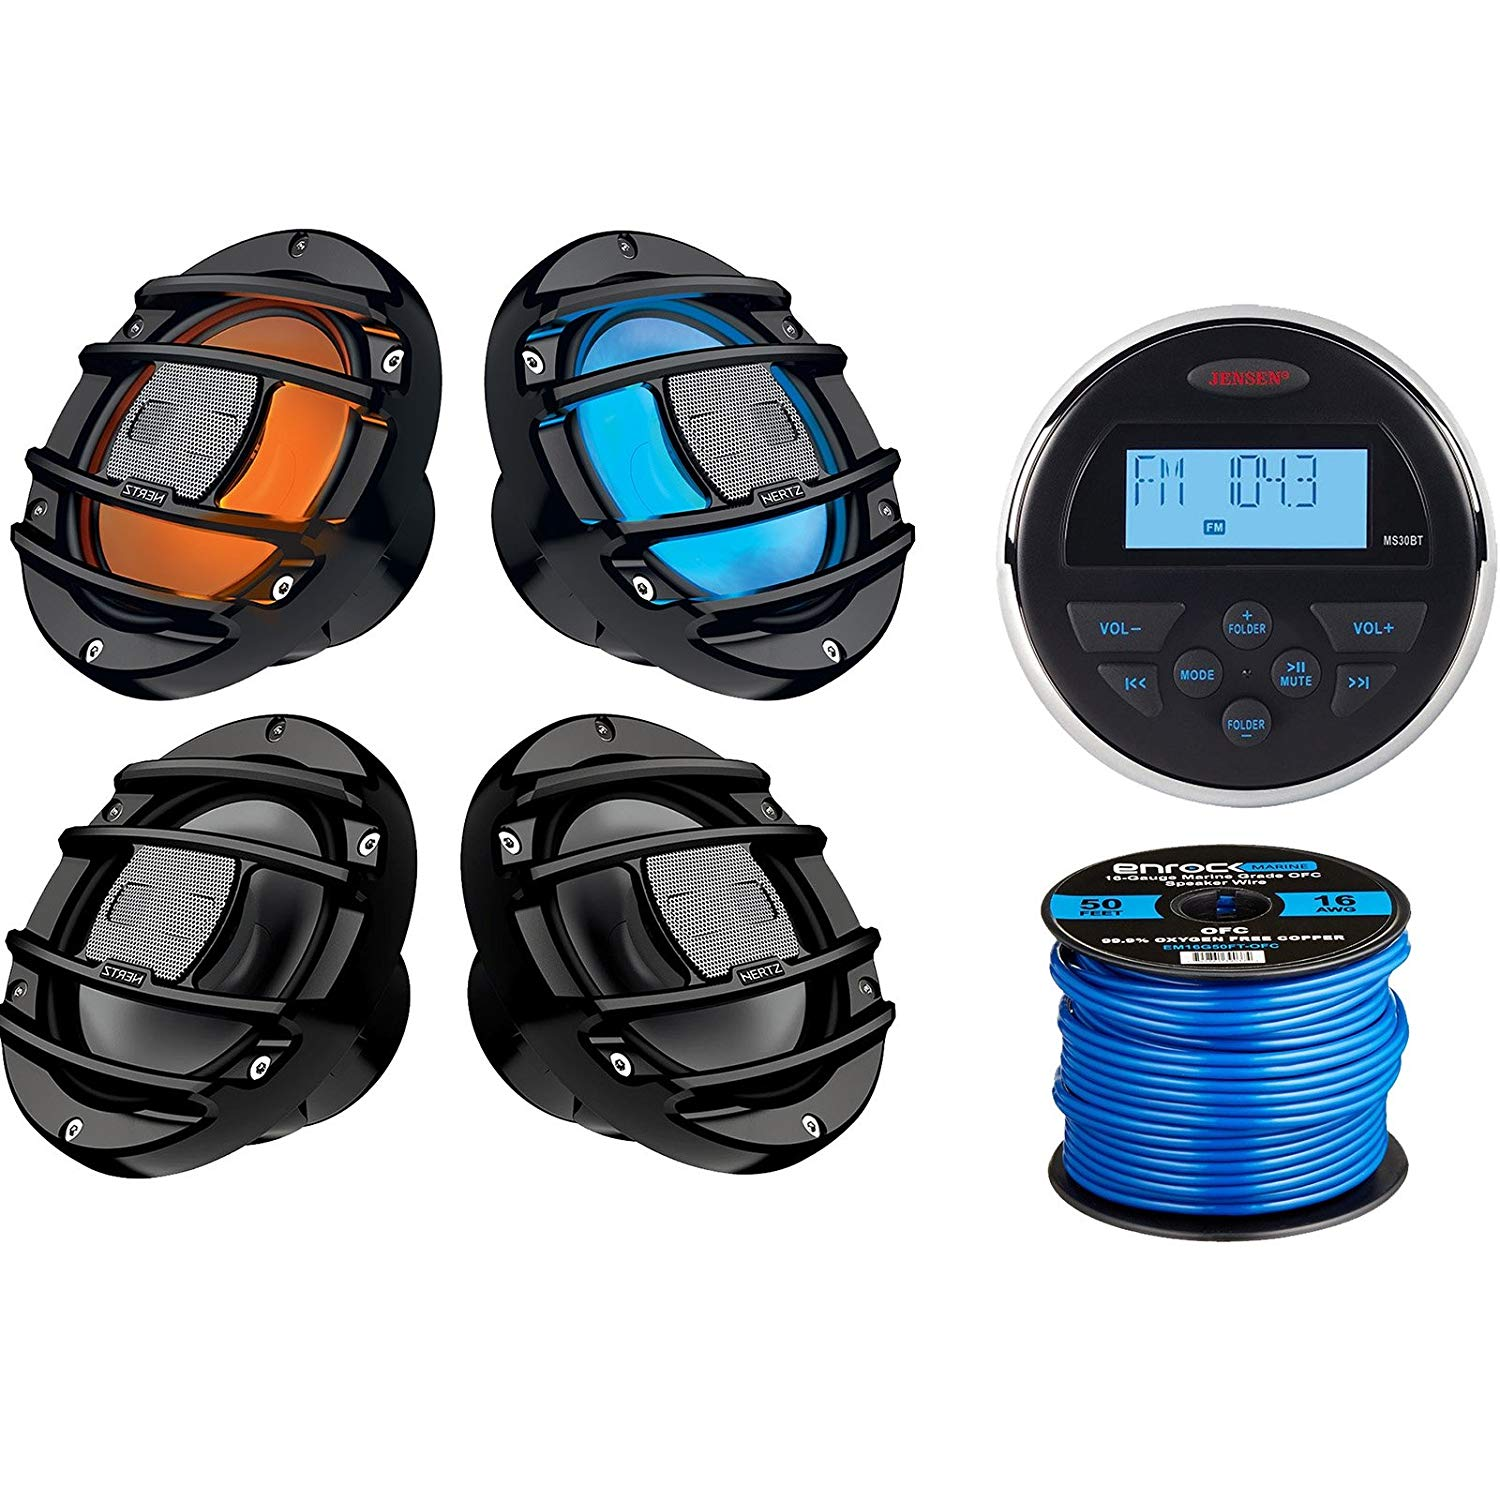 "Jensen MS30BTR Mechless Compact Waterproof Stereo w/Bluetooth, 2 x Hertz Audio 6.5"" Marine Coaxial Speakers w/RGB Lighting (B), 2 x Hertz 6.5"" Powersport Speakers (B), 50Ft 16-Gauge Speaker Wire"